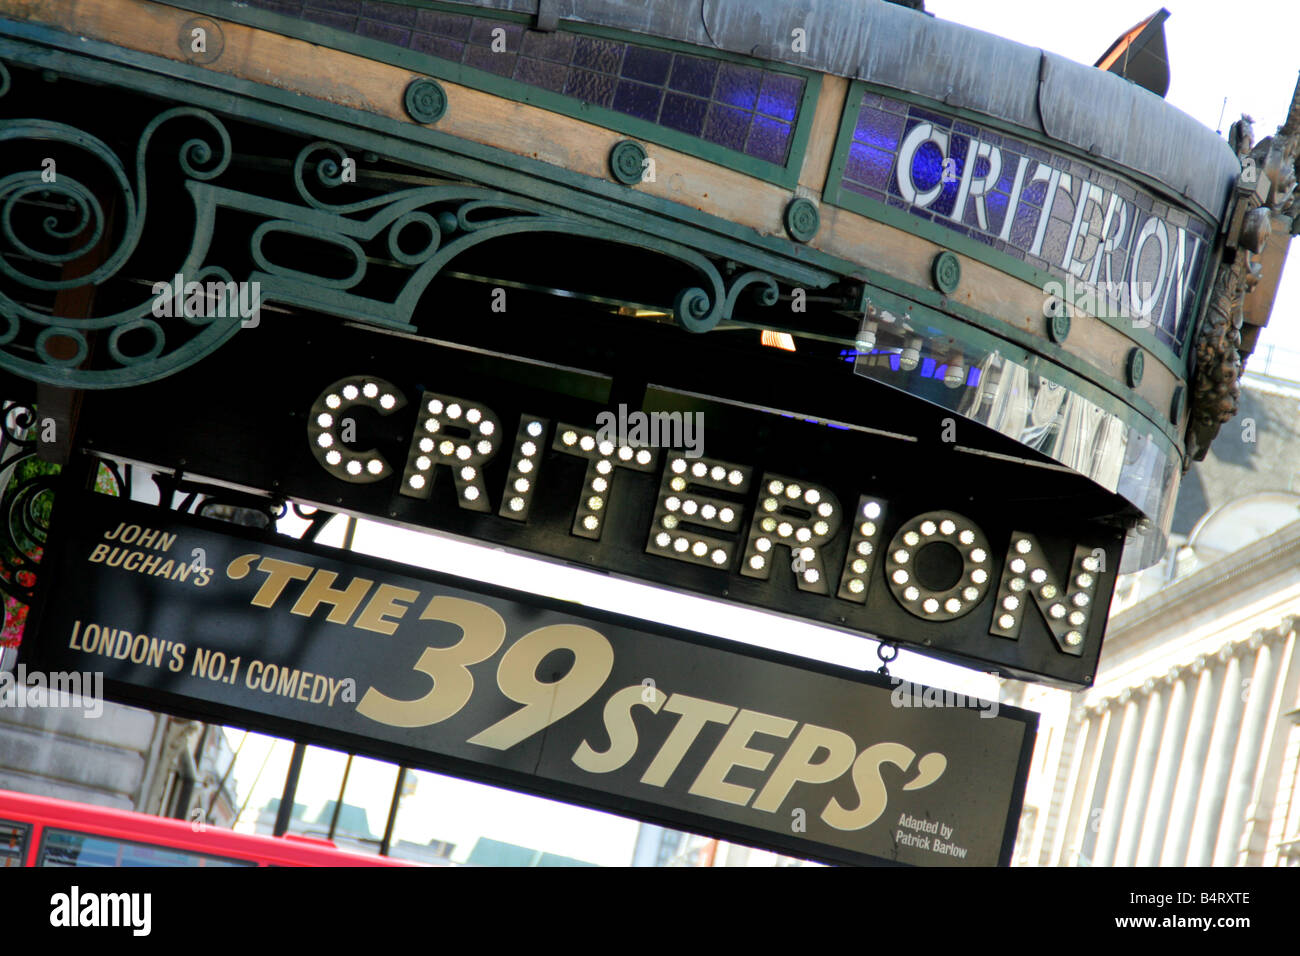 The Criterion theatre in Picadilly Circus London UK advertising John Buchan s 39 steps - Stock Image